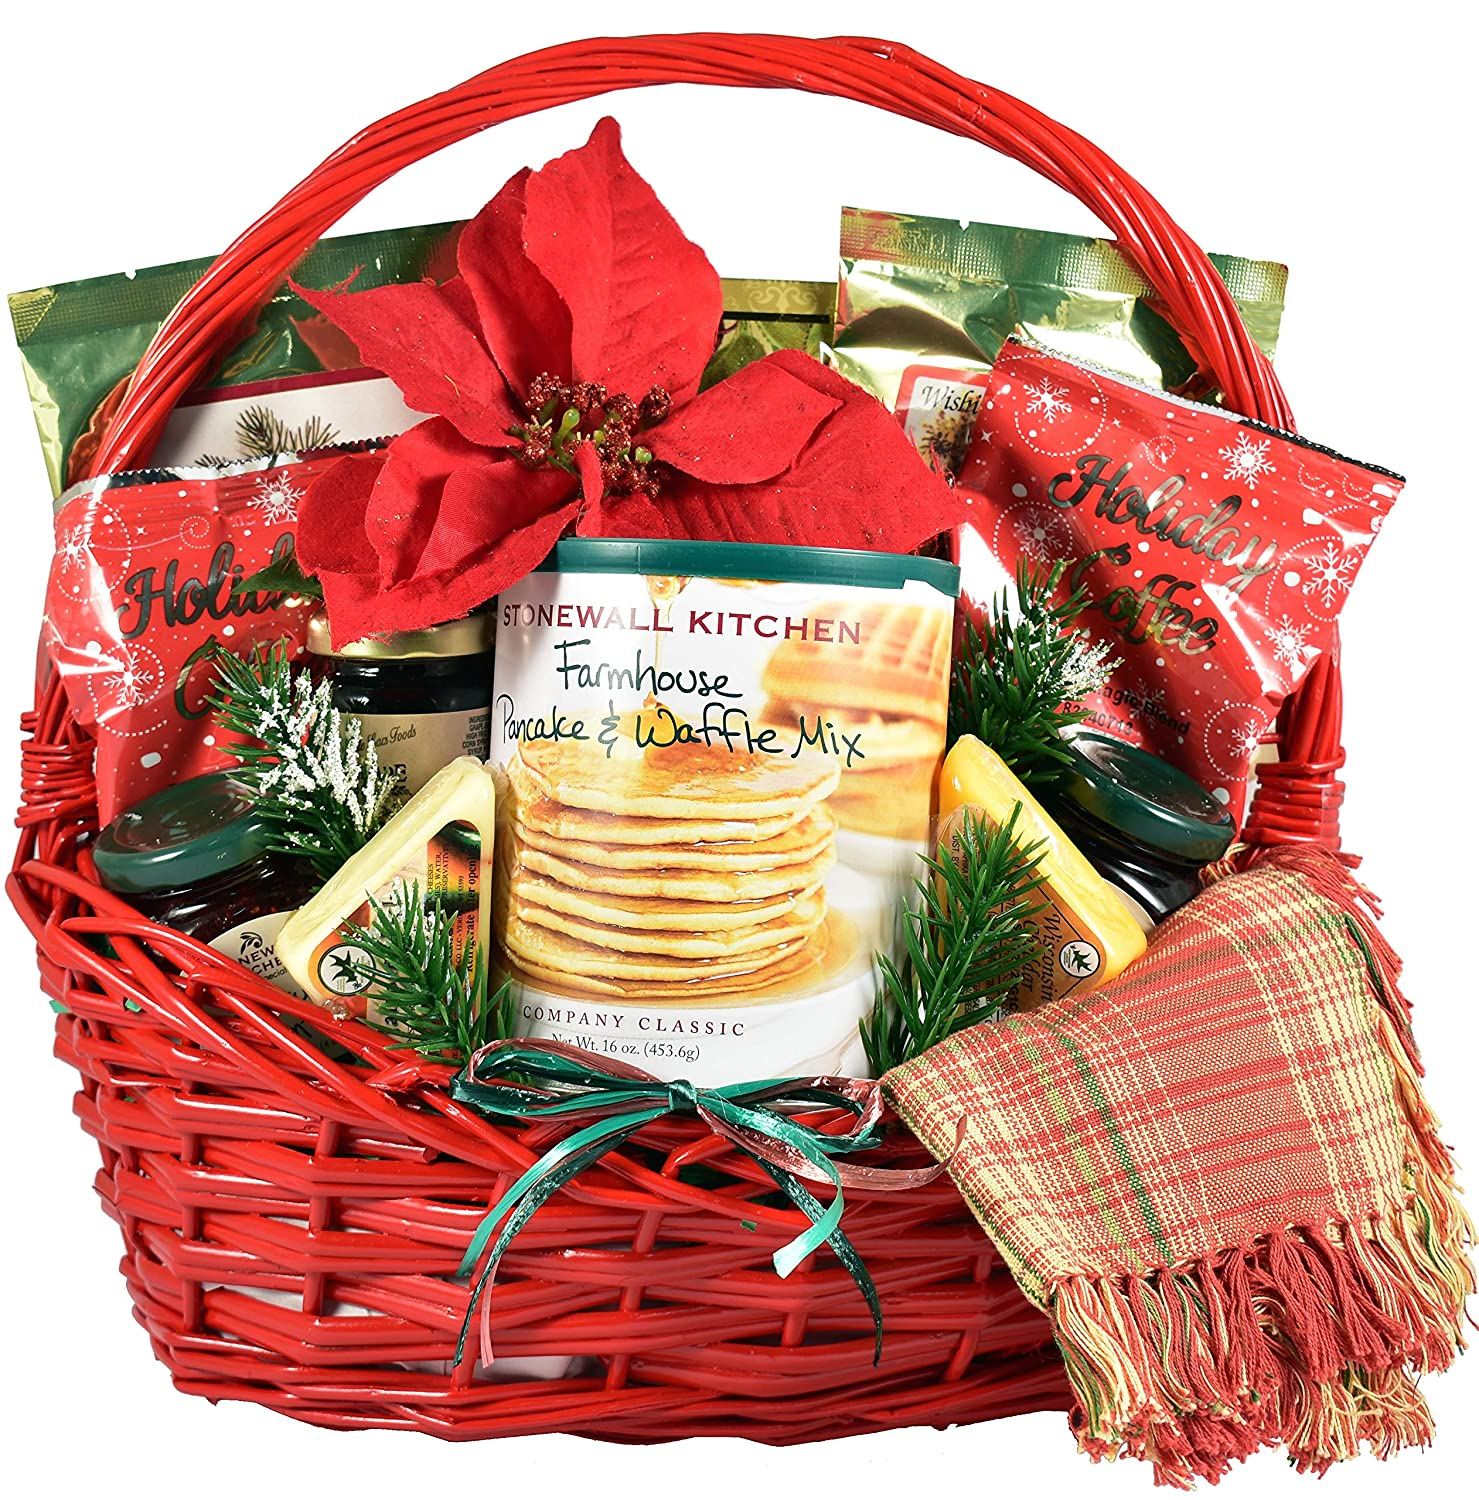 Gift Basket Village Country Christmas Breakfast Basket - A Classic Morning Breakfast Kit Filled With Mouth Watering Flavors For Family or Friends (Large), 11 pound